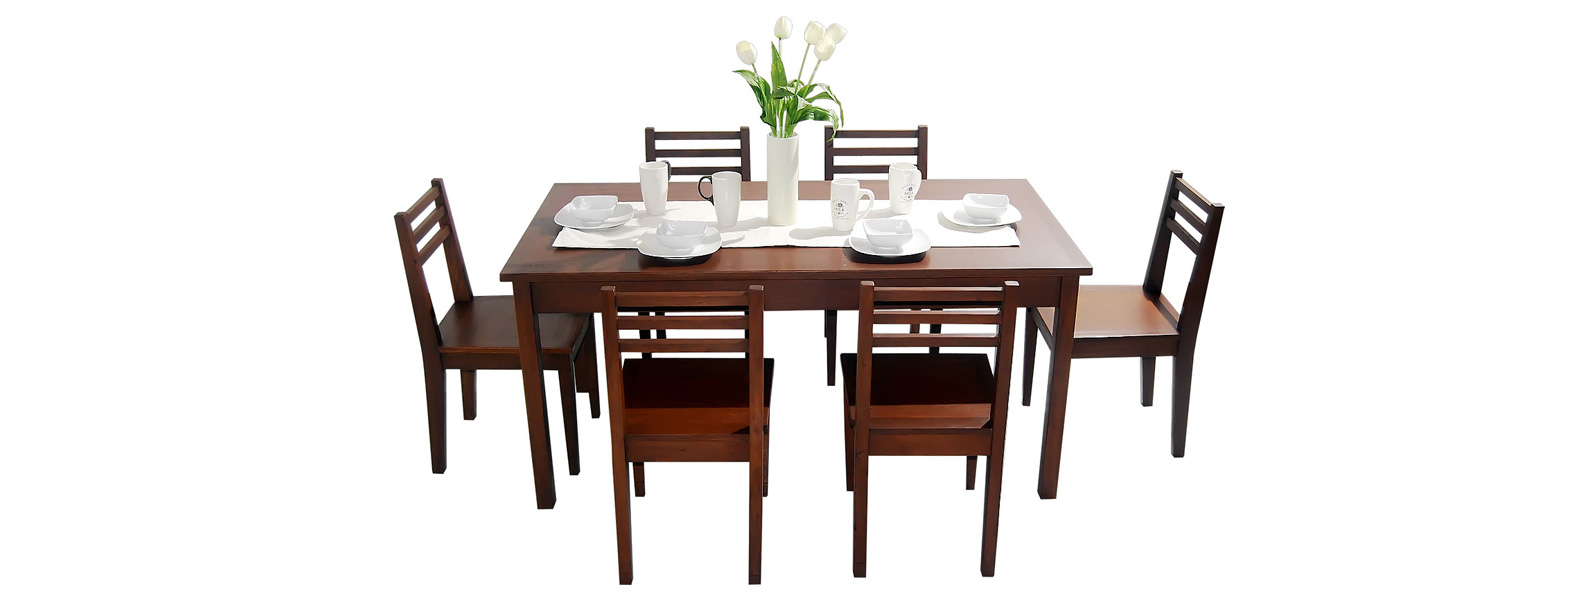 Tables and chairs rental in dasmarinas cavite - Dining Table And Chairs